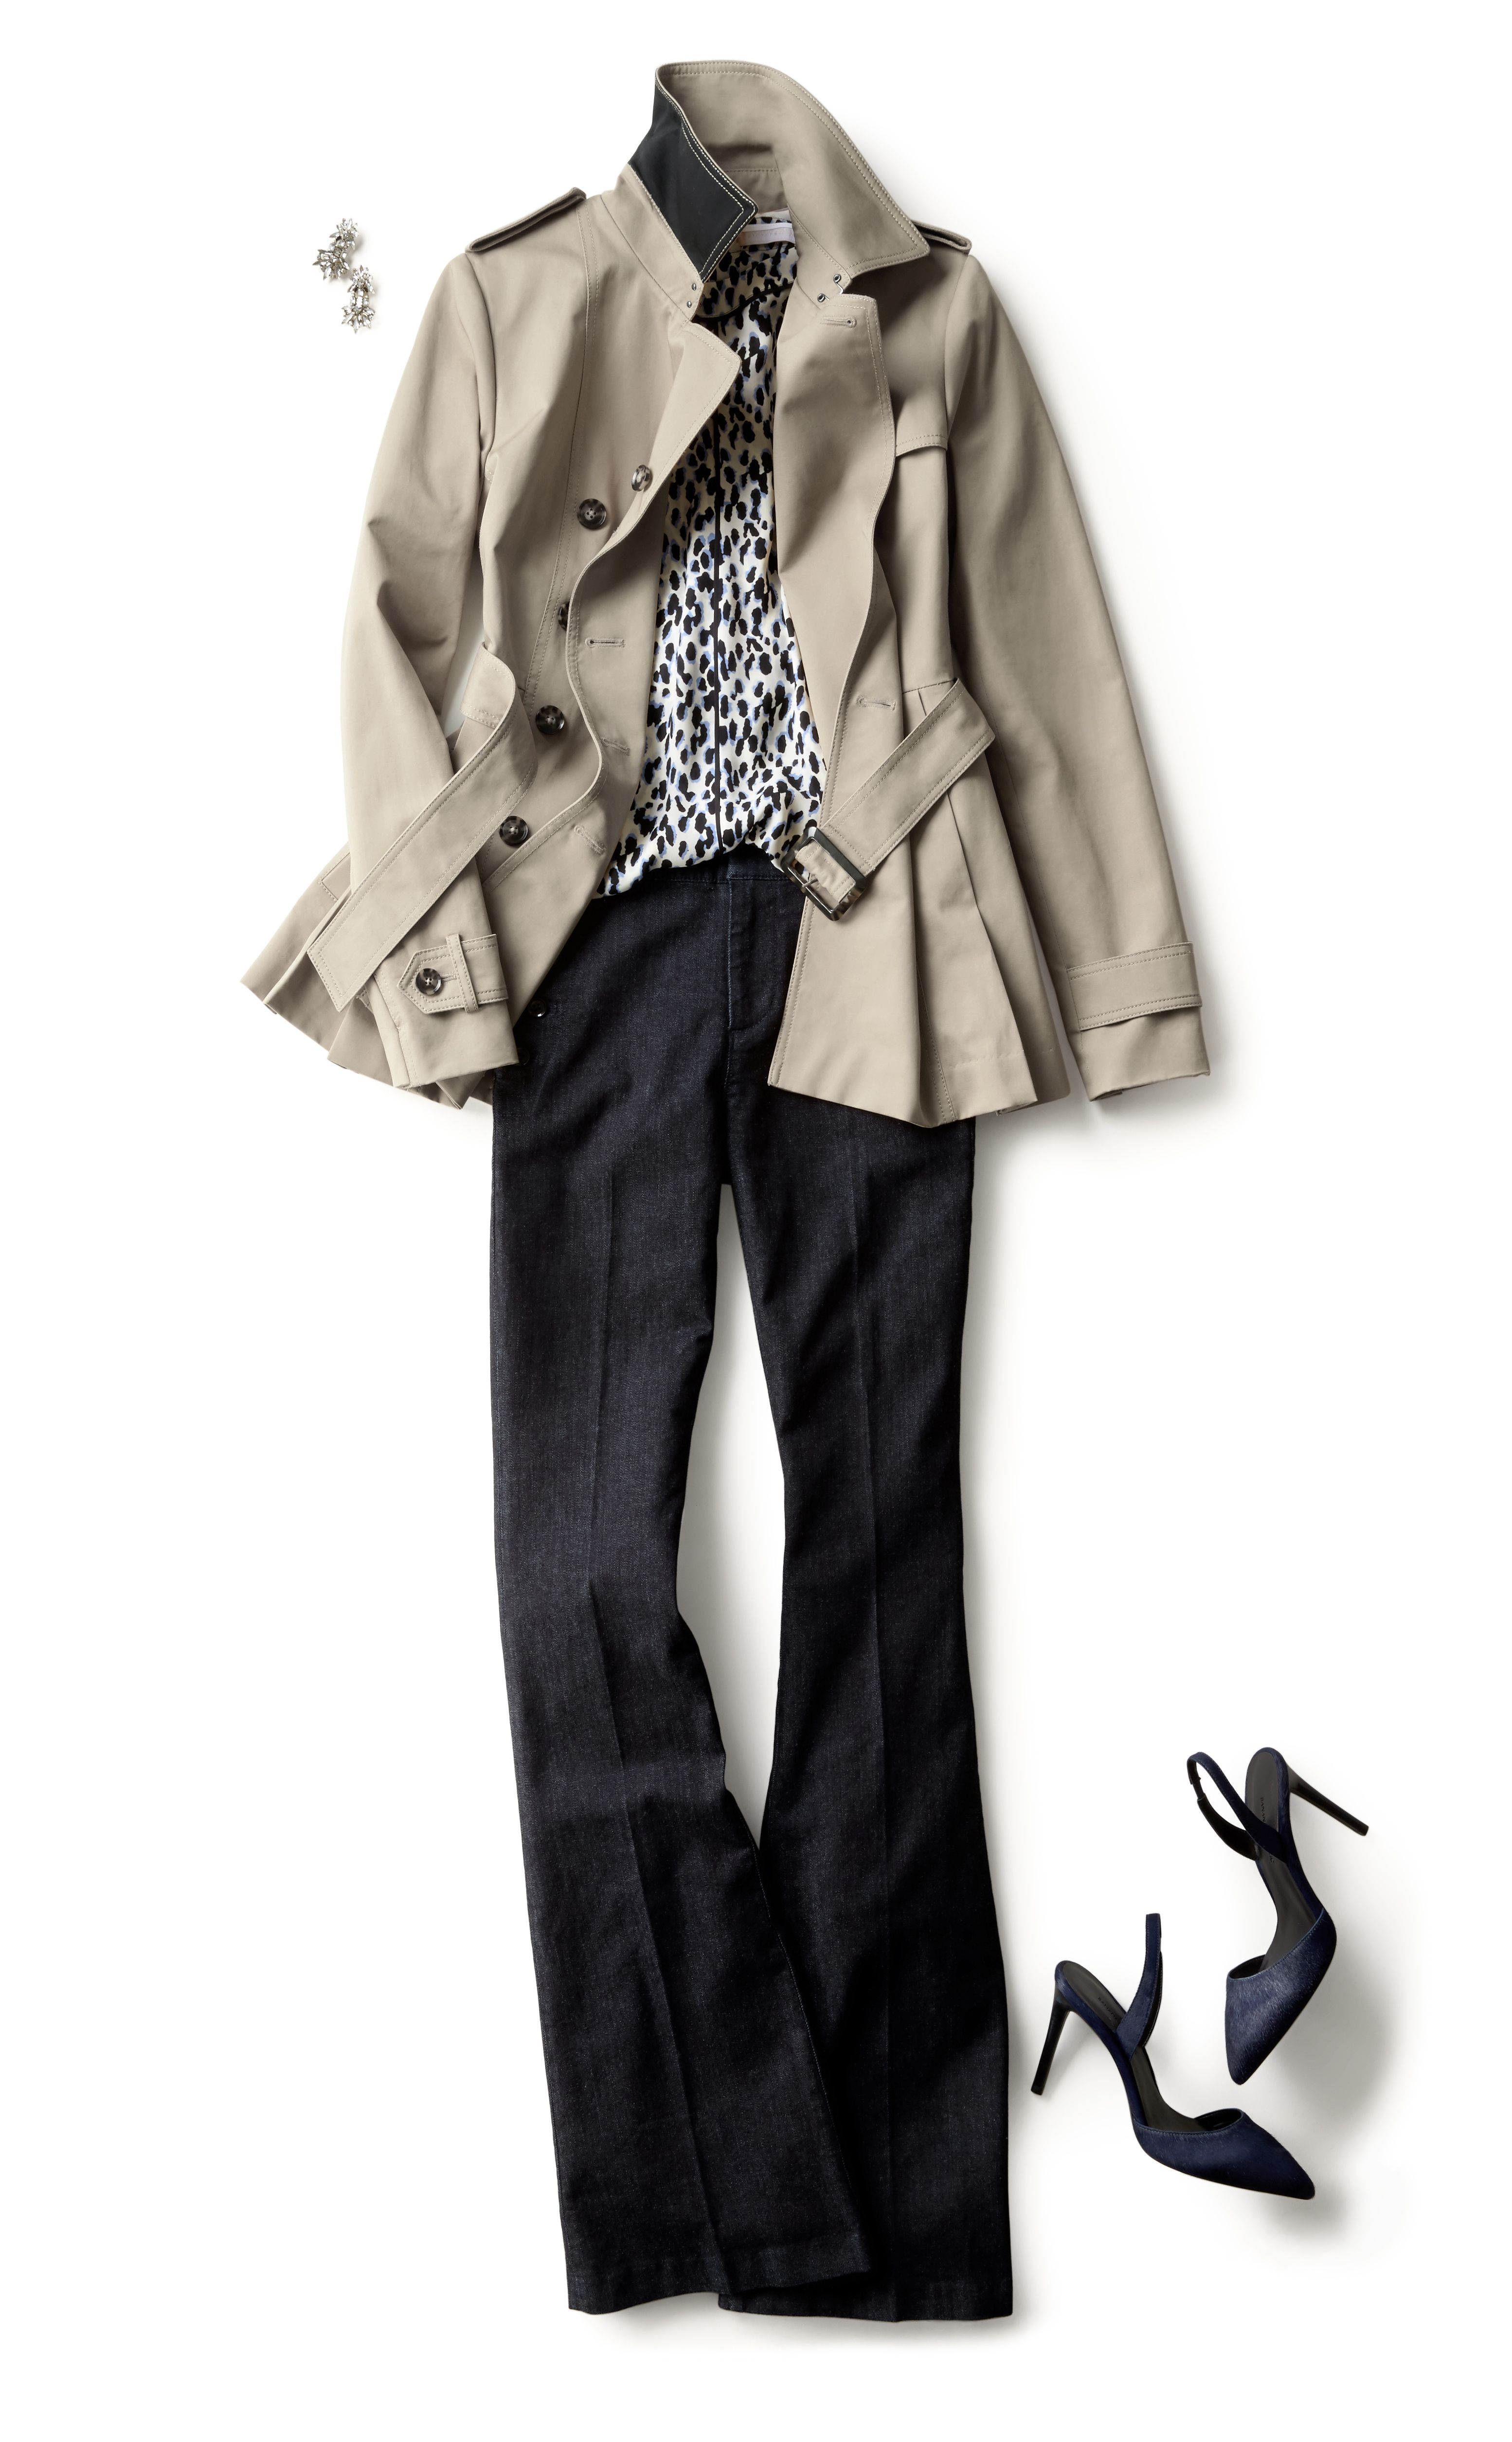 23b609f4c5 Discover the perfect crop trench to stylishly take you everywhere this  season | Banana Republic